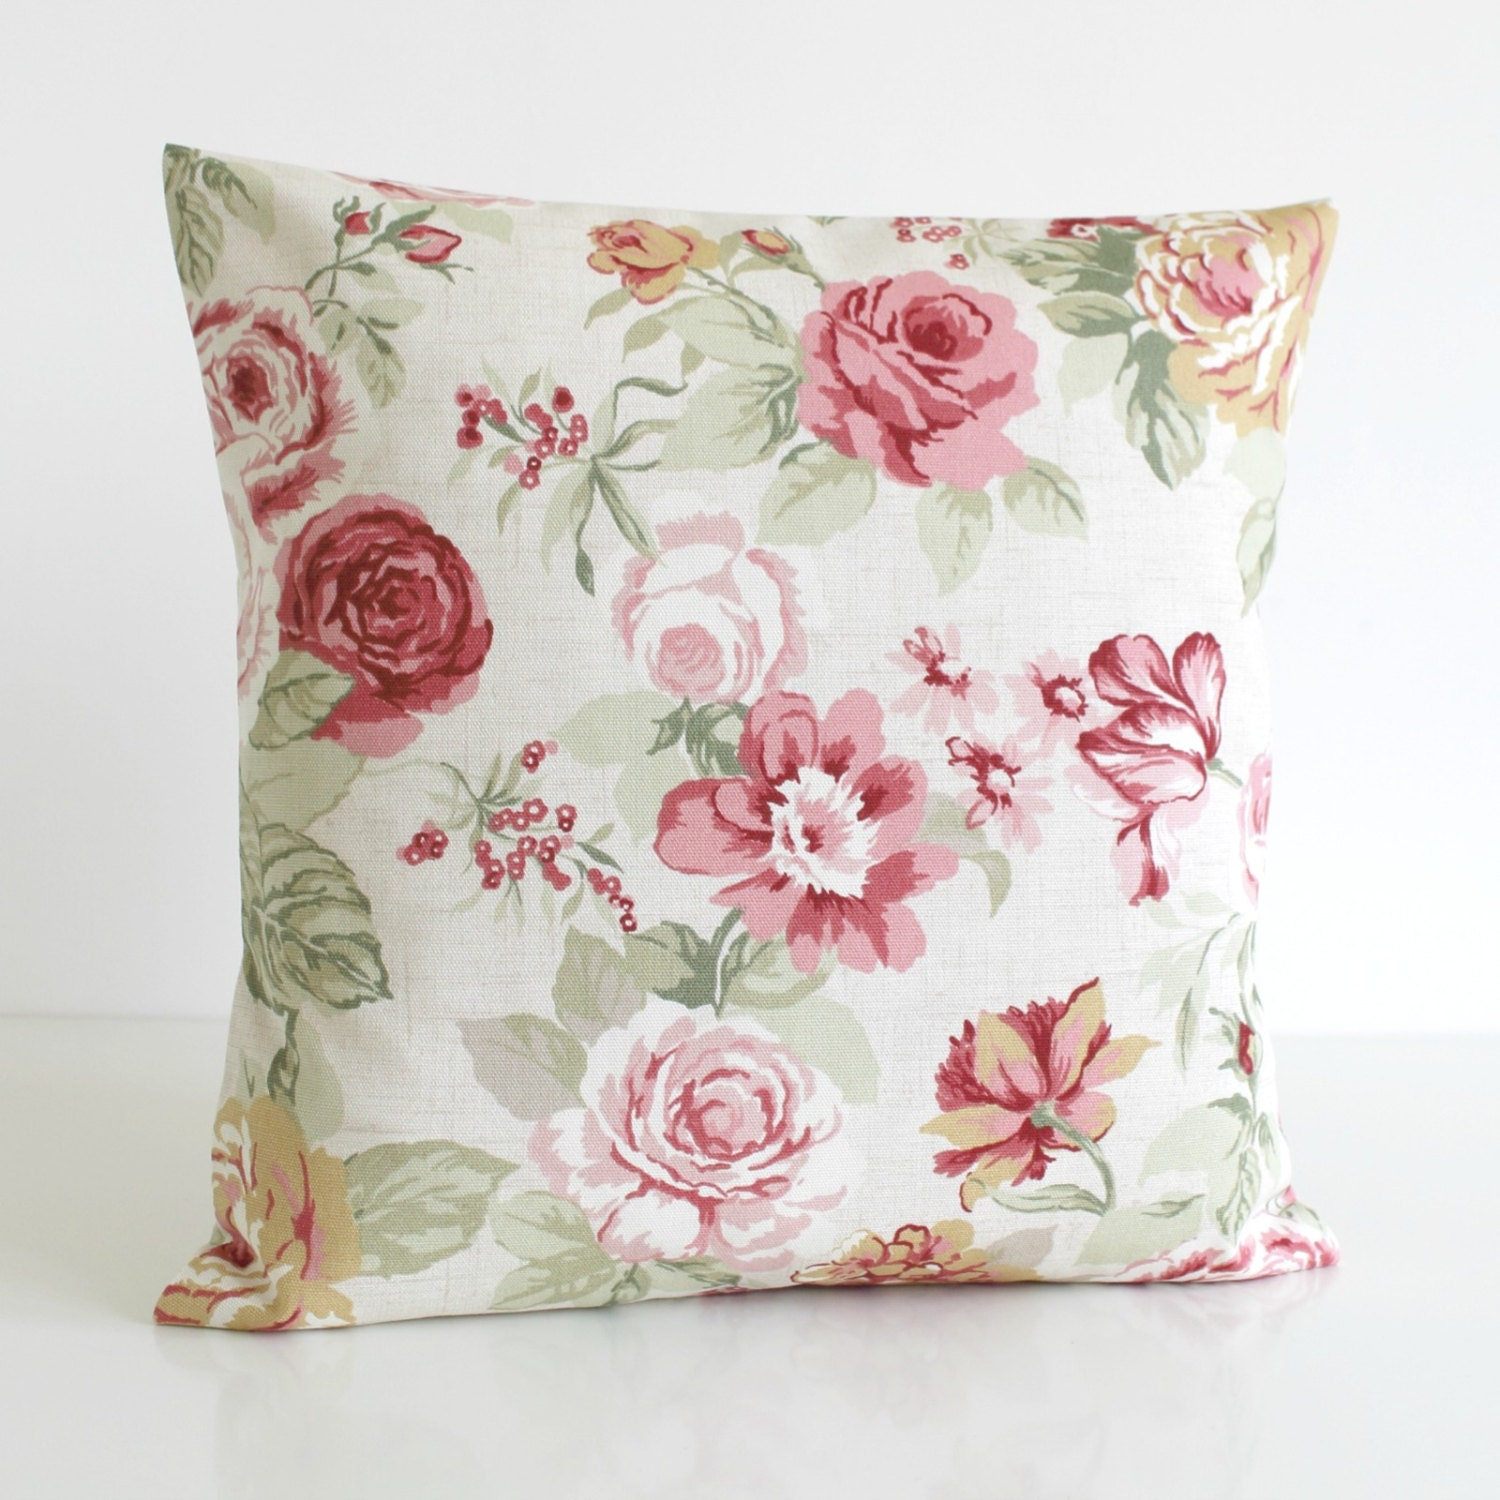 Decorative Pillows Flowers : Shabby Chic Decorative Pillow Cover Floral Cushion by CoupleHome